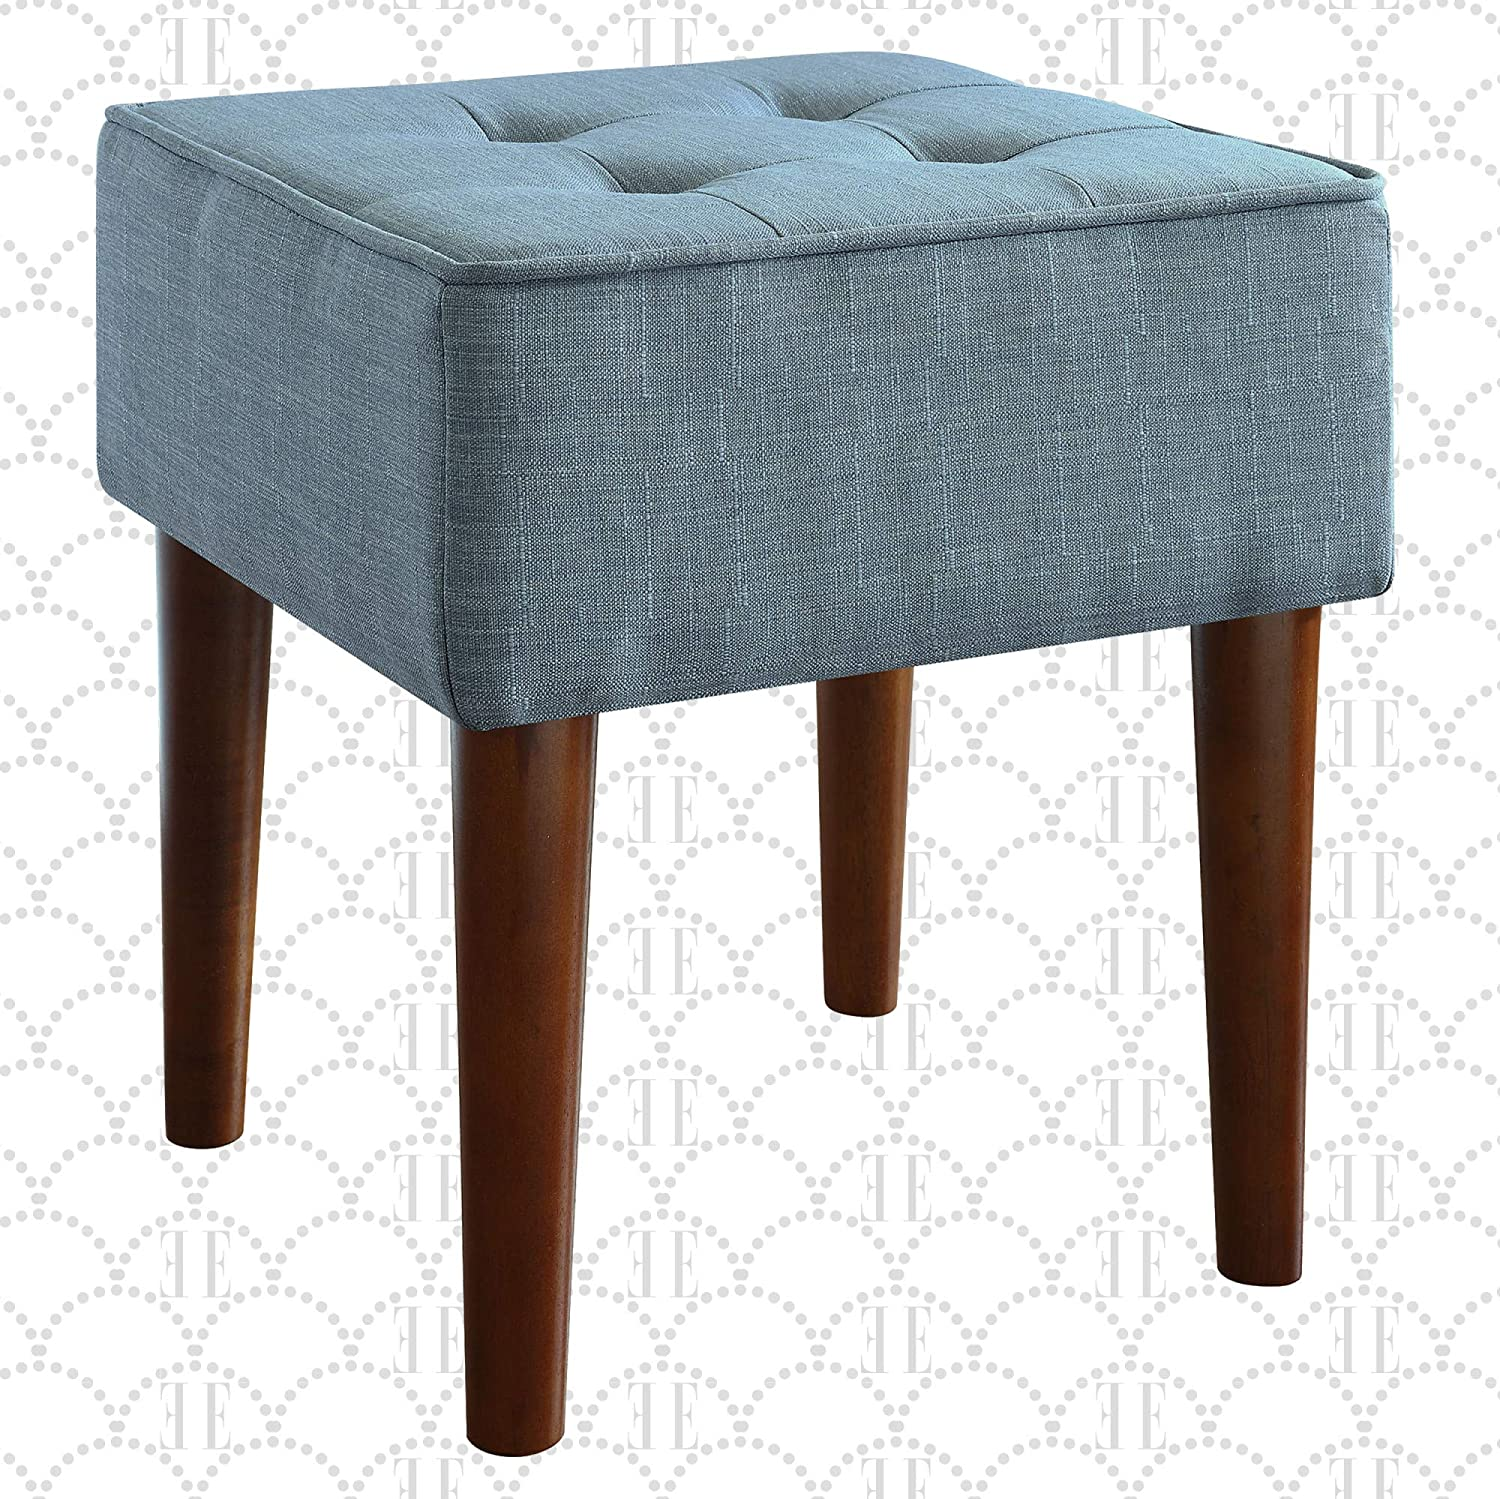 Elle Decor Aria Upholstered Ottoman Food Rest Stool with Classic Button Tufted Style, Extra Seating for Modern Home, Compact Size for Small Space, Blue